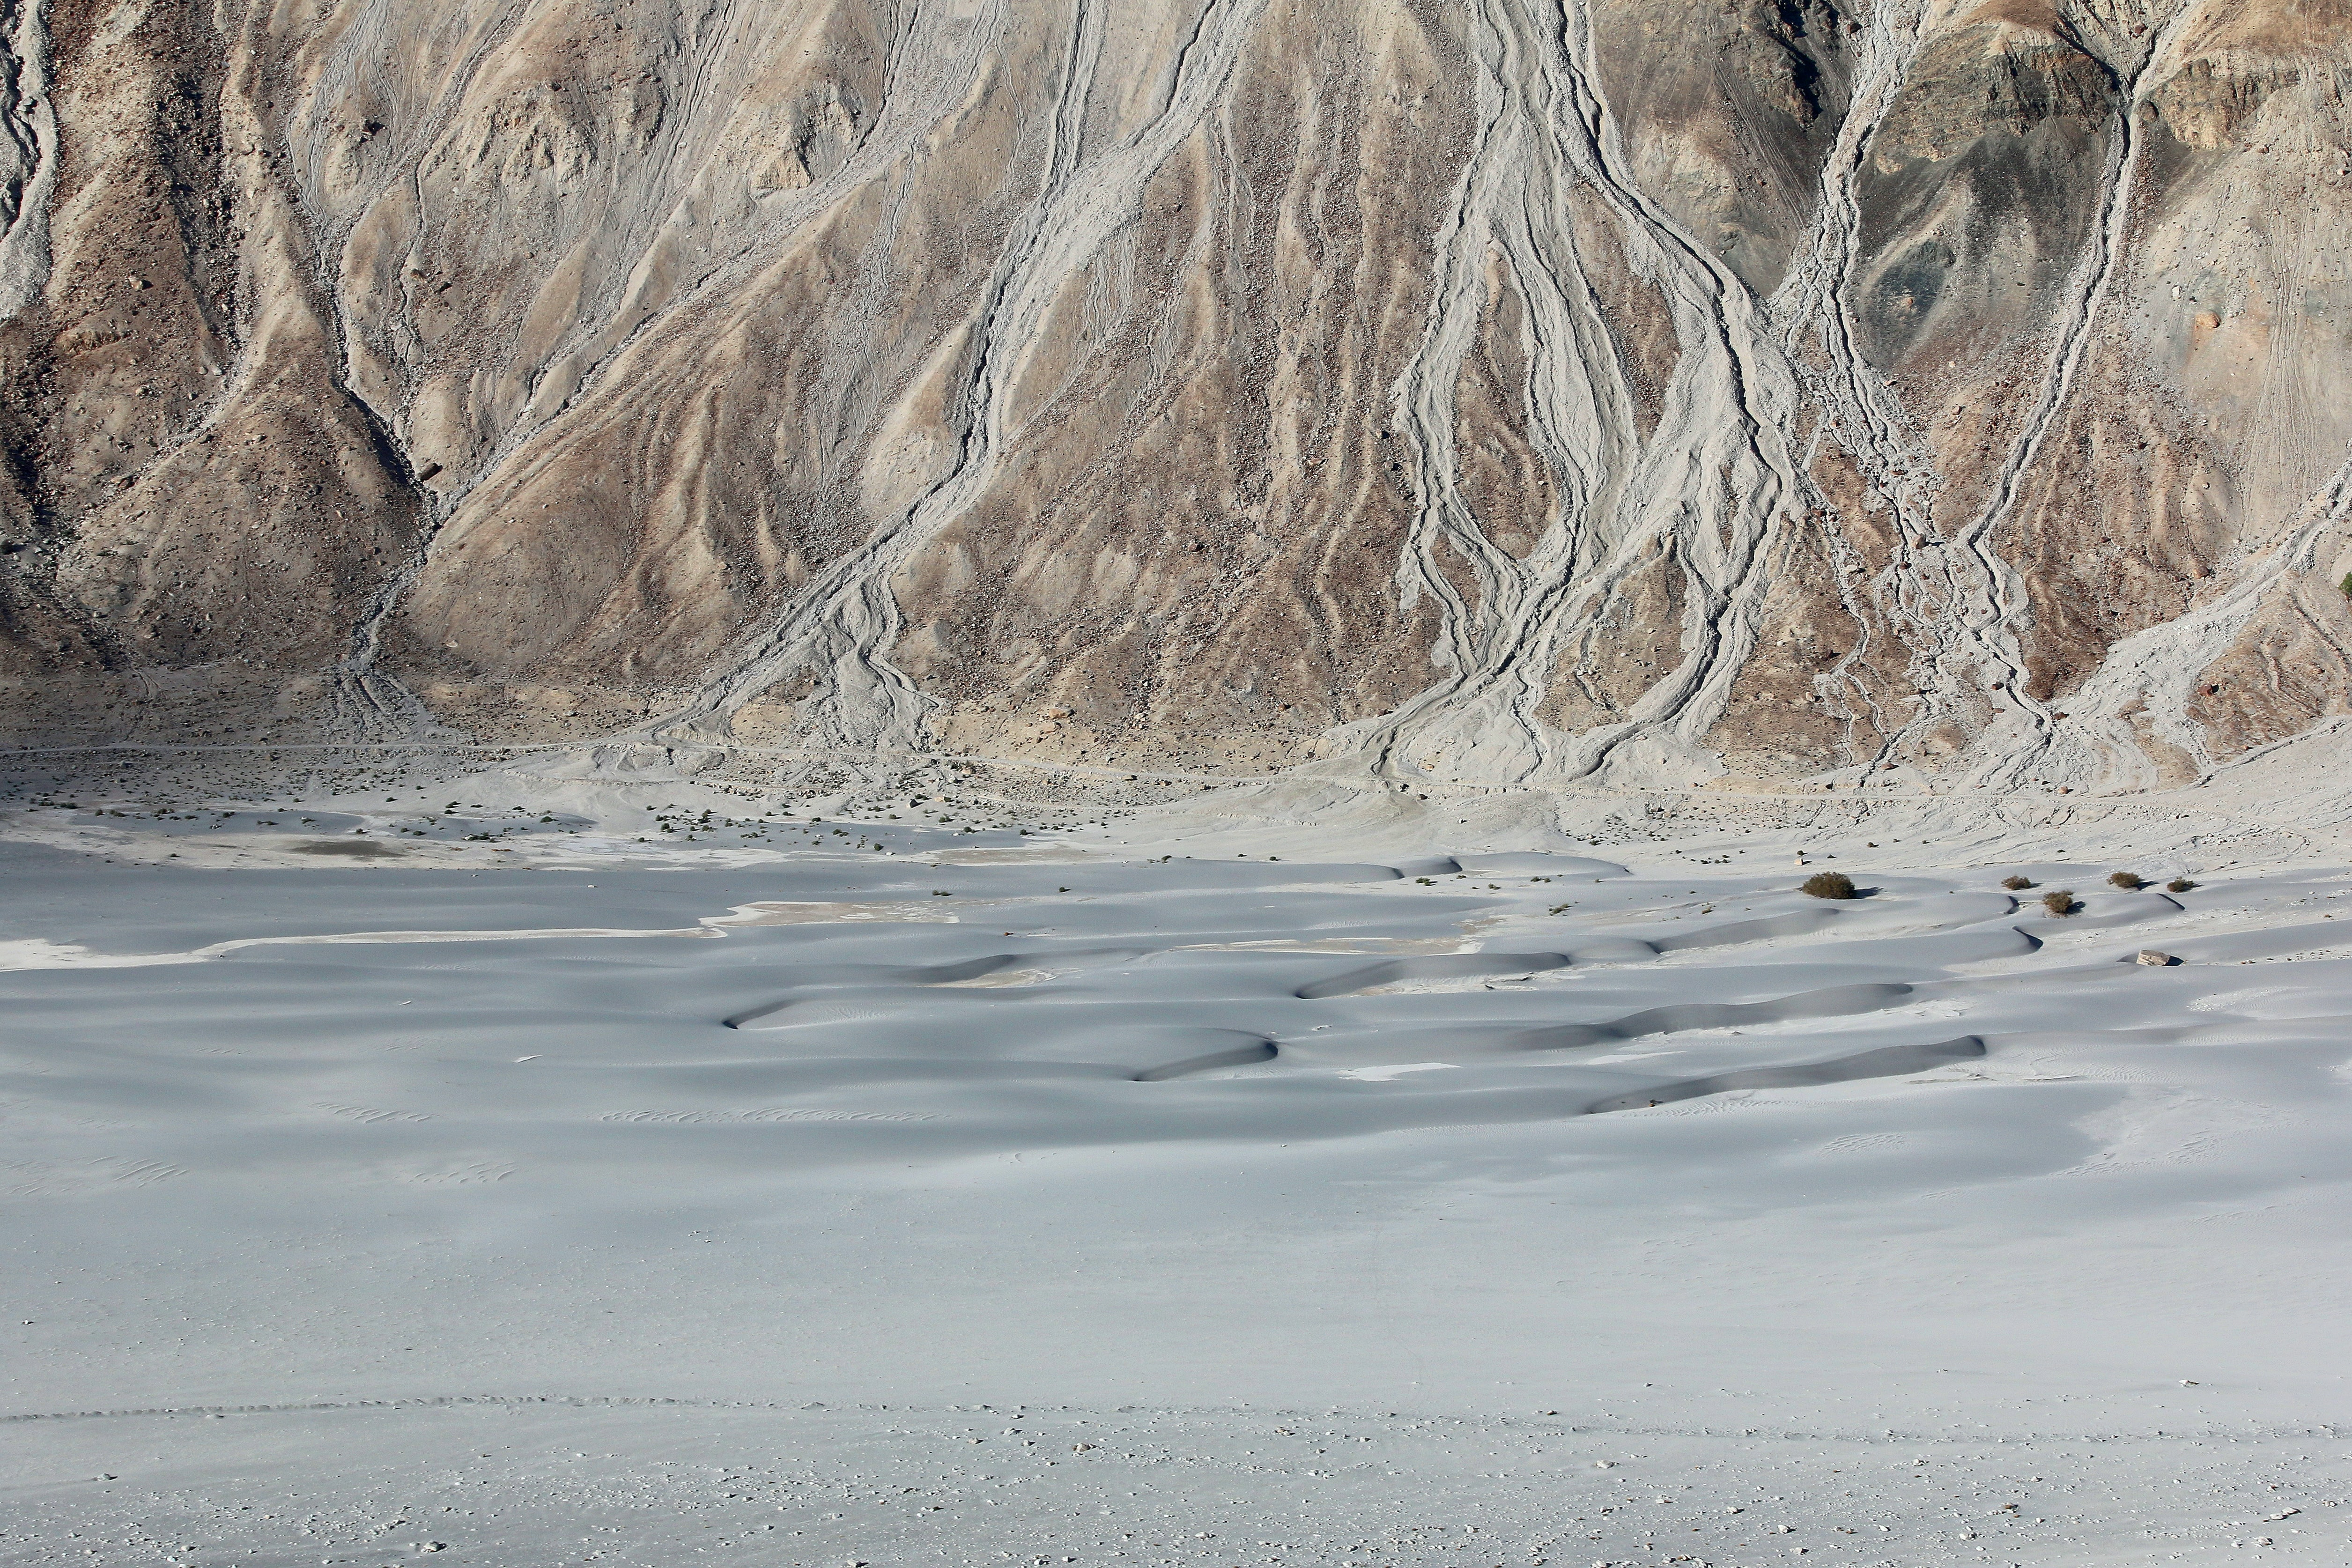 Winding lines down the mountainside in Nubra Valley desert